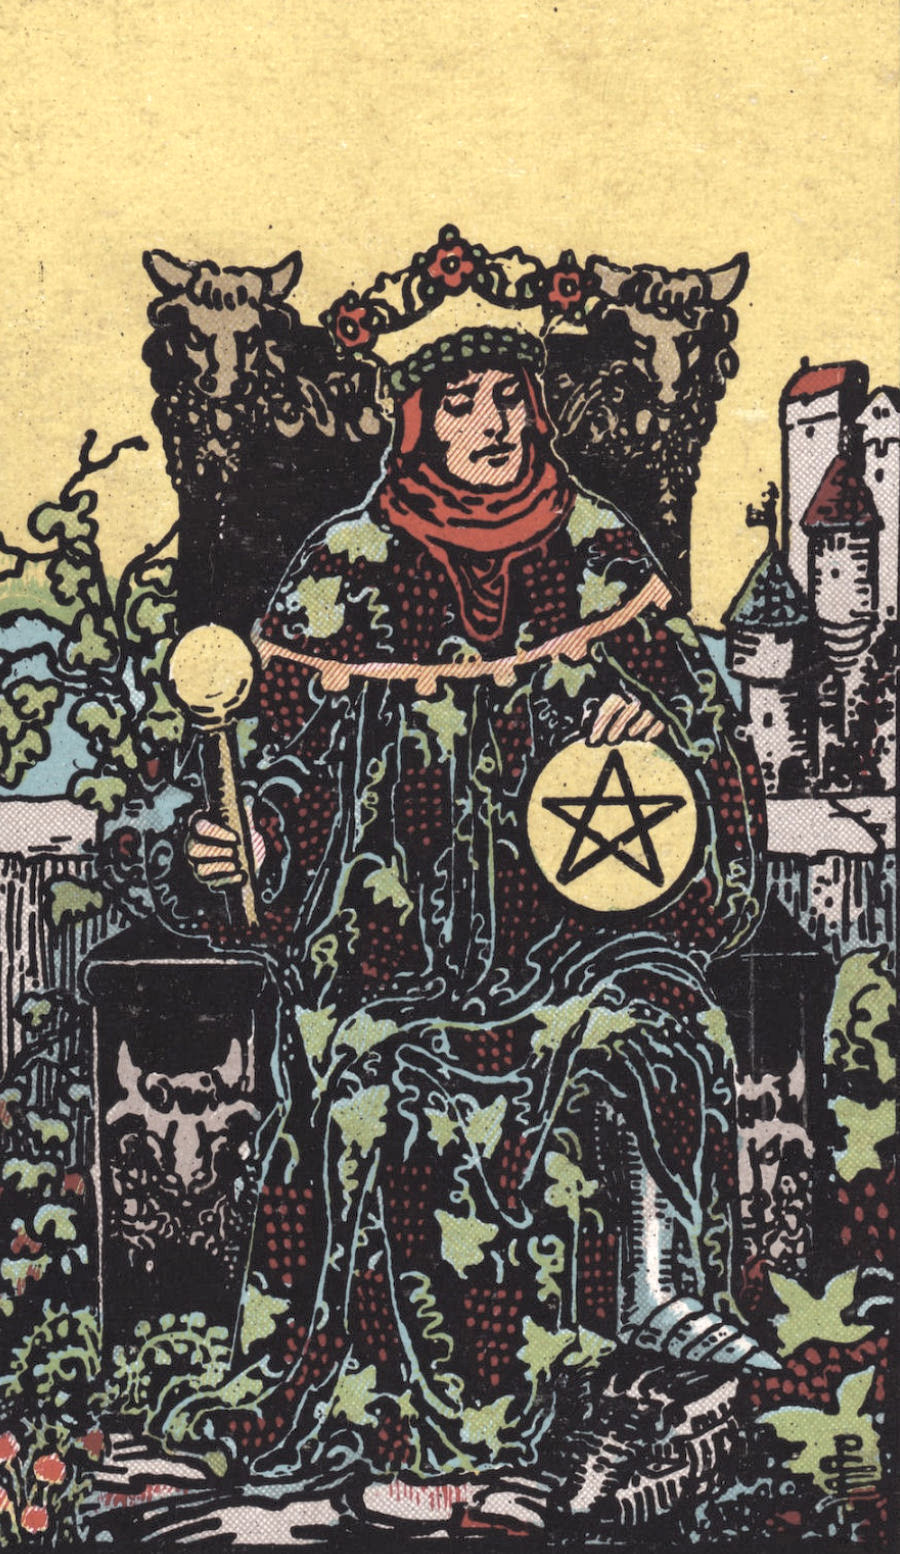 Rider Waite Smith King of Pentacles Tarot Card Meaning